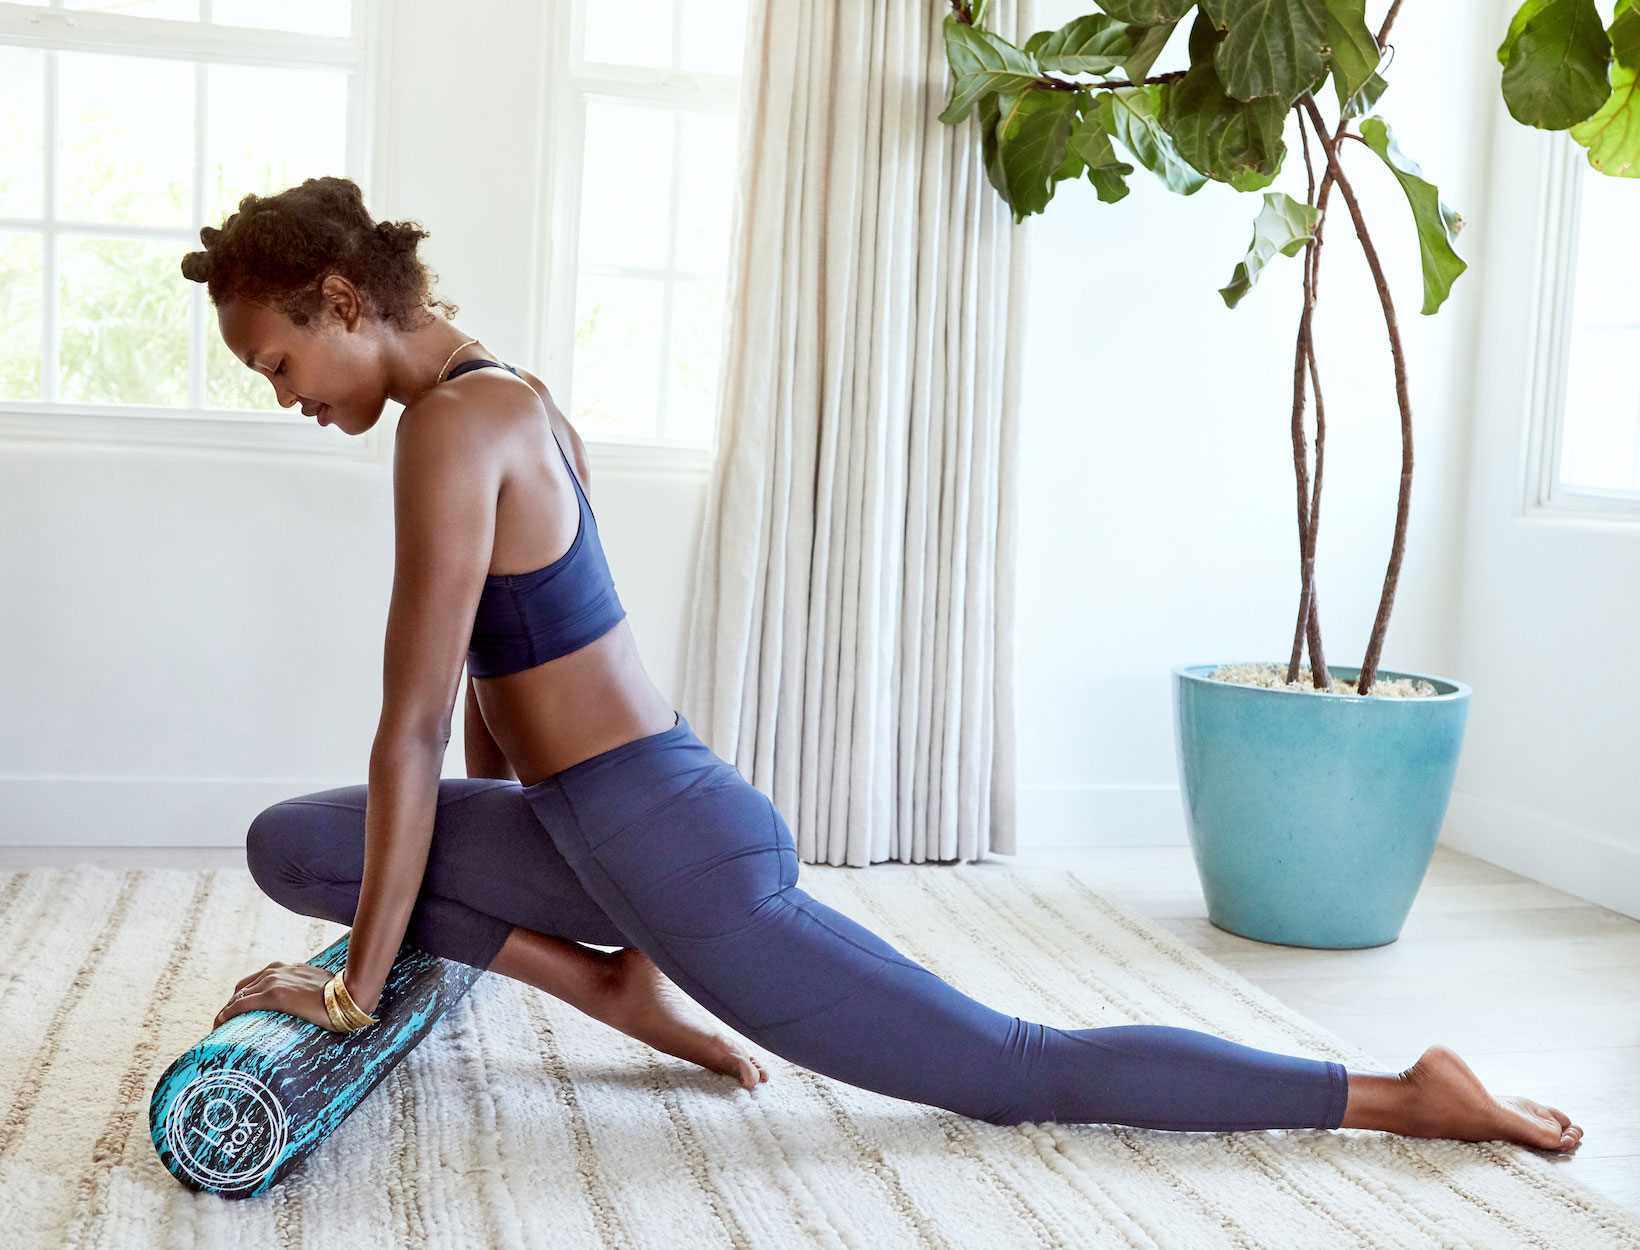 The Fix for Endless Sitting Is Foam Rolling